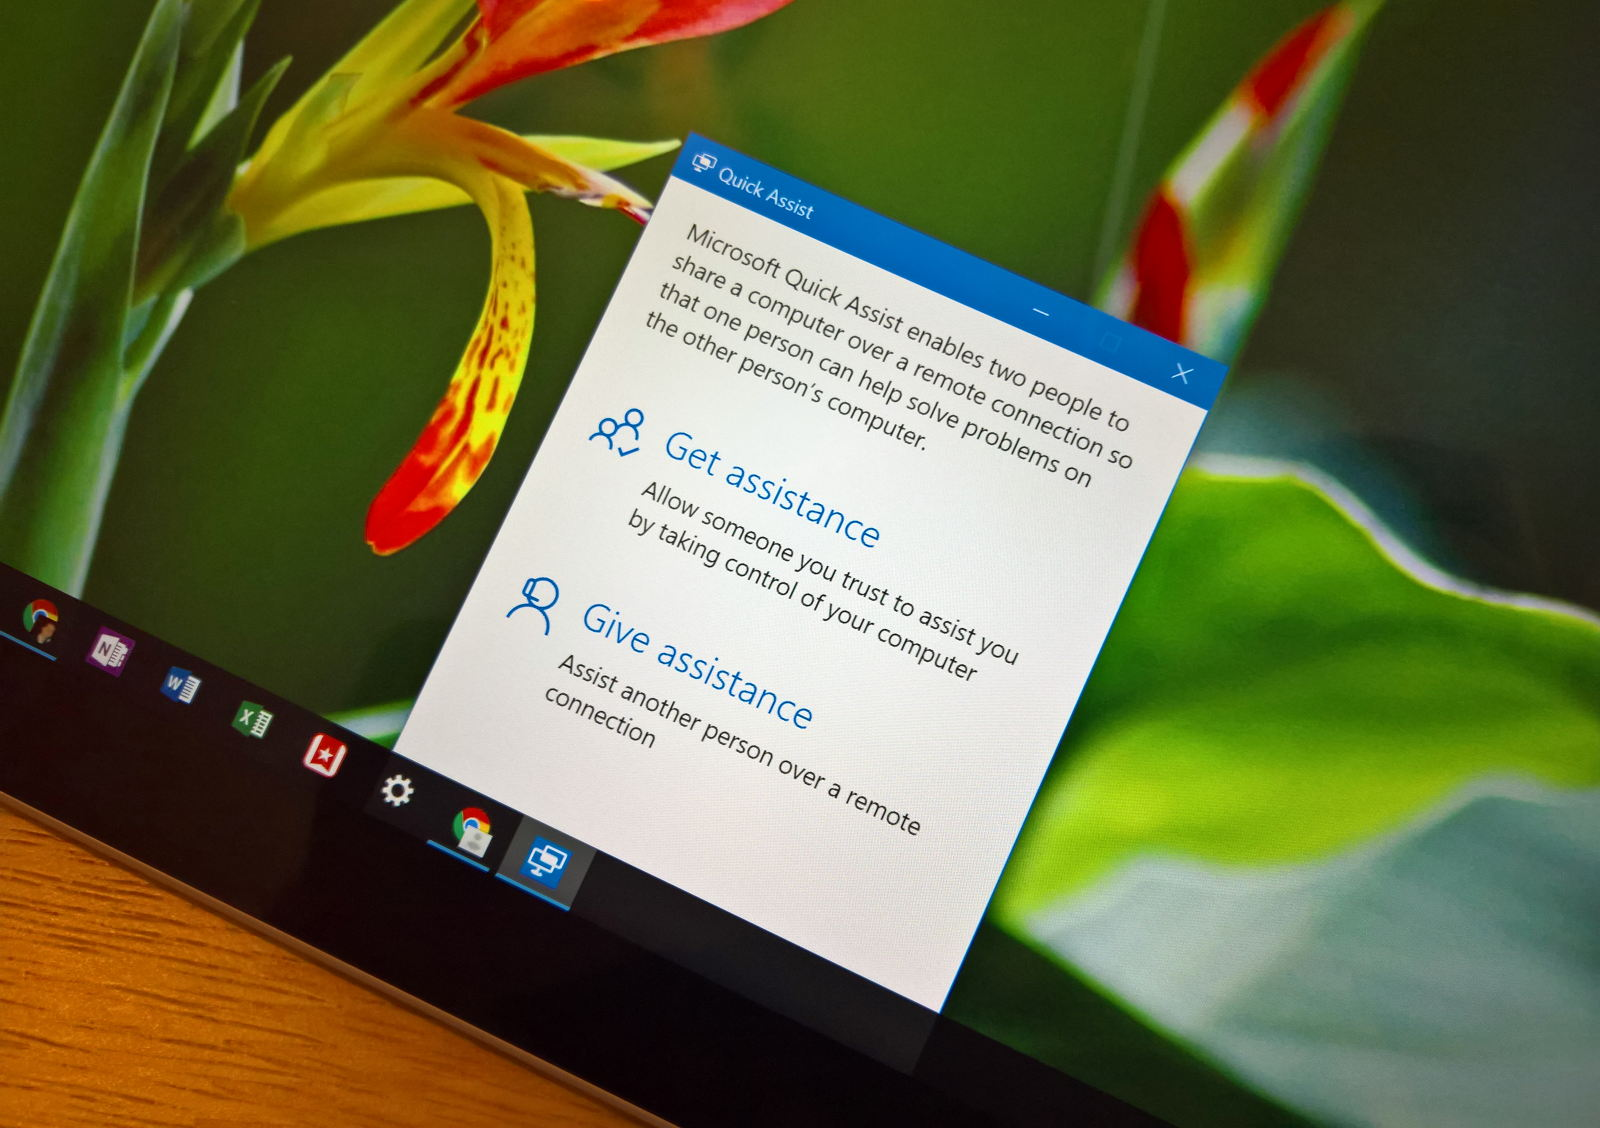 Microsoft Quick Assist remote assistance app for Windows 10